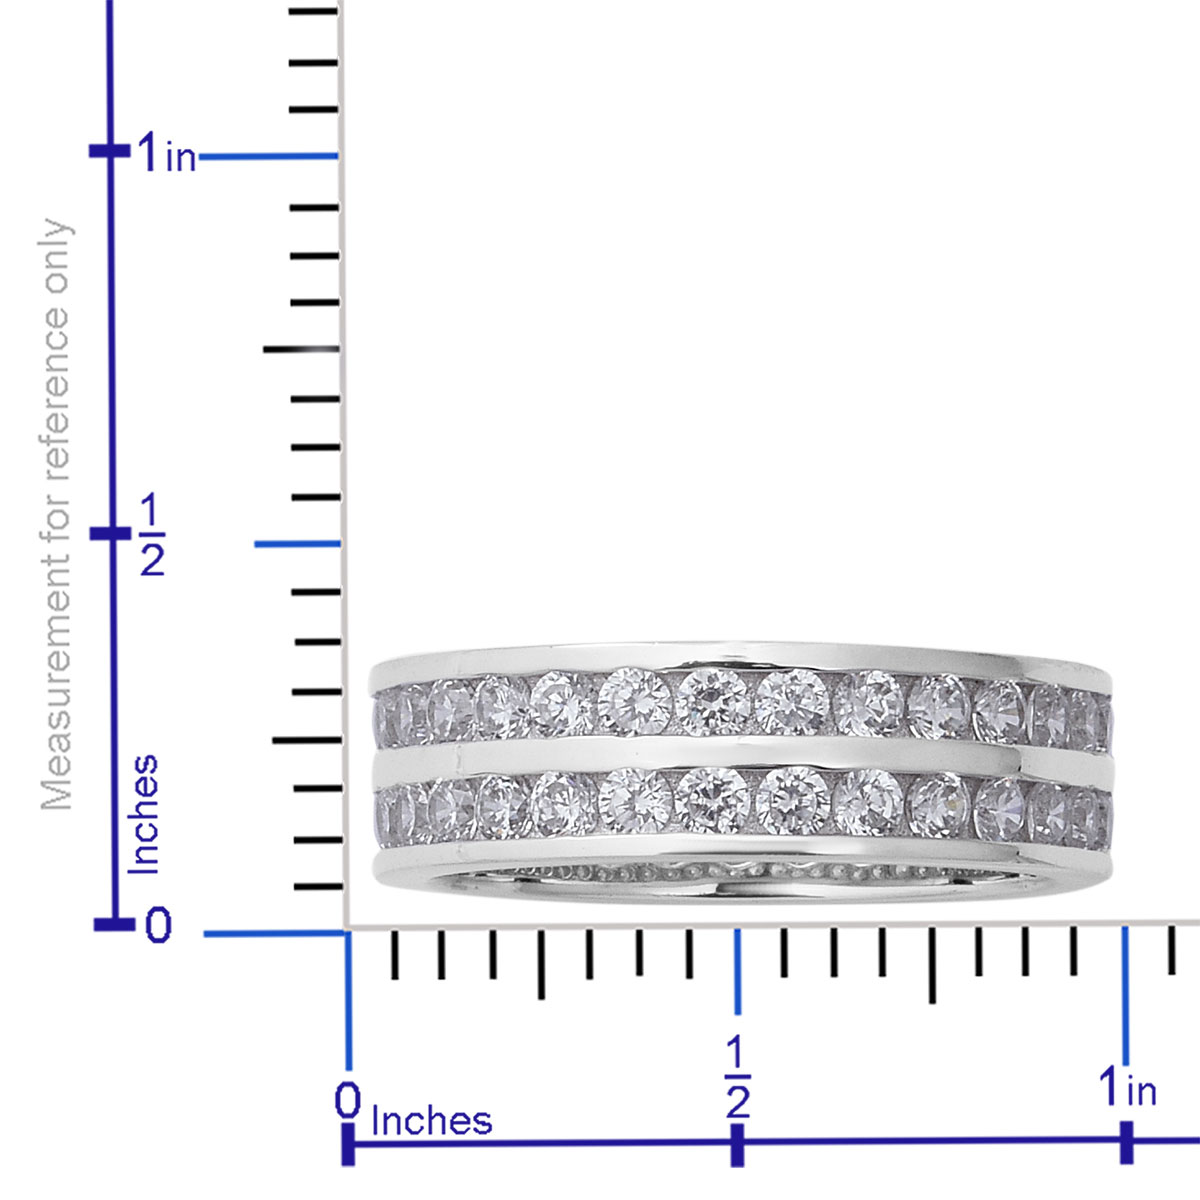 LUSTRO STELLA CZ Eternity Band Ring in Sterling Silver (Size 10.0) 4.48 ctw